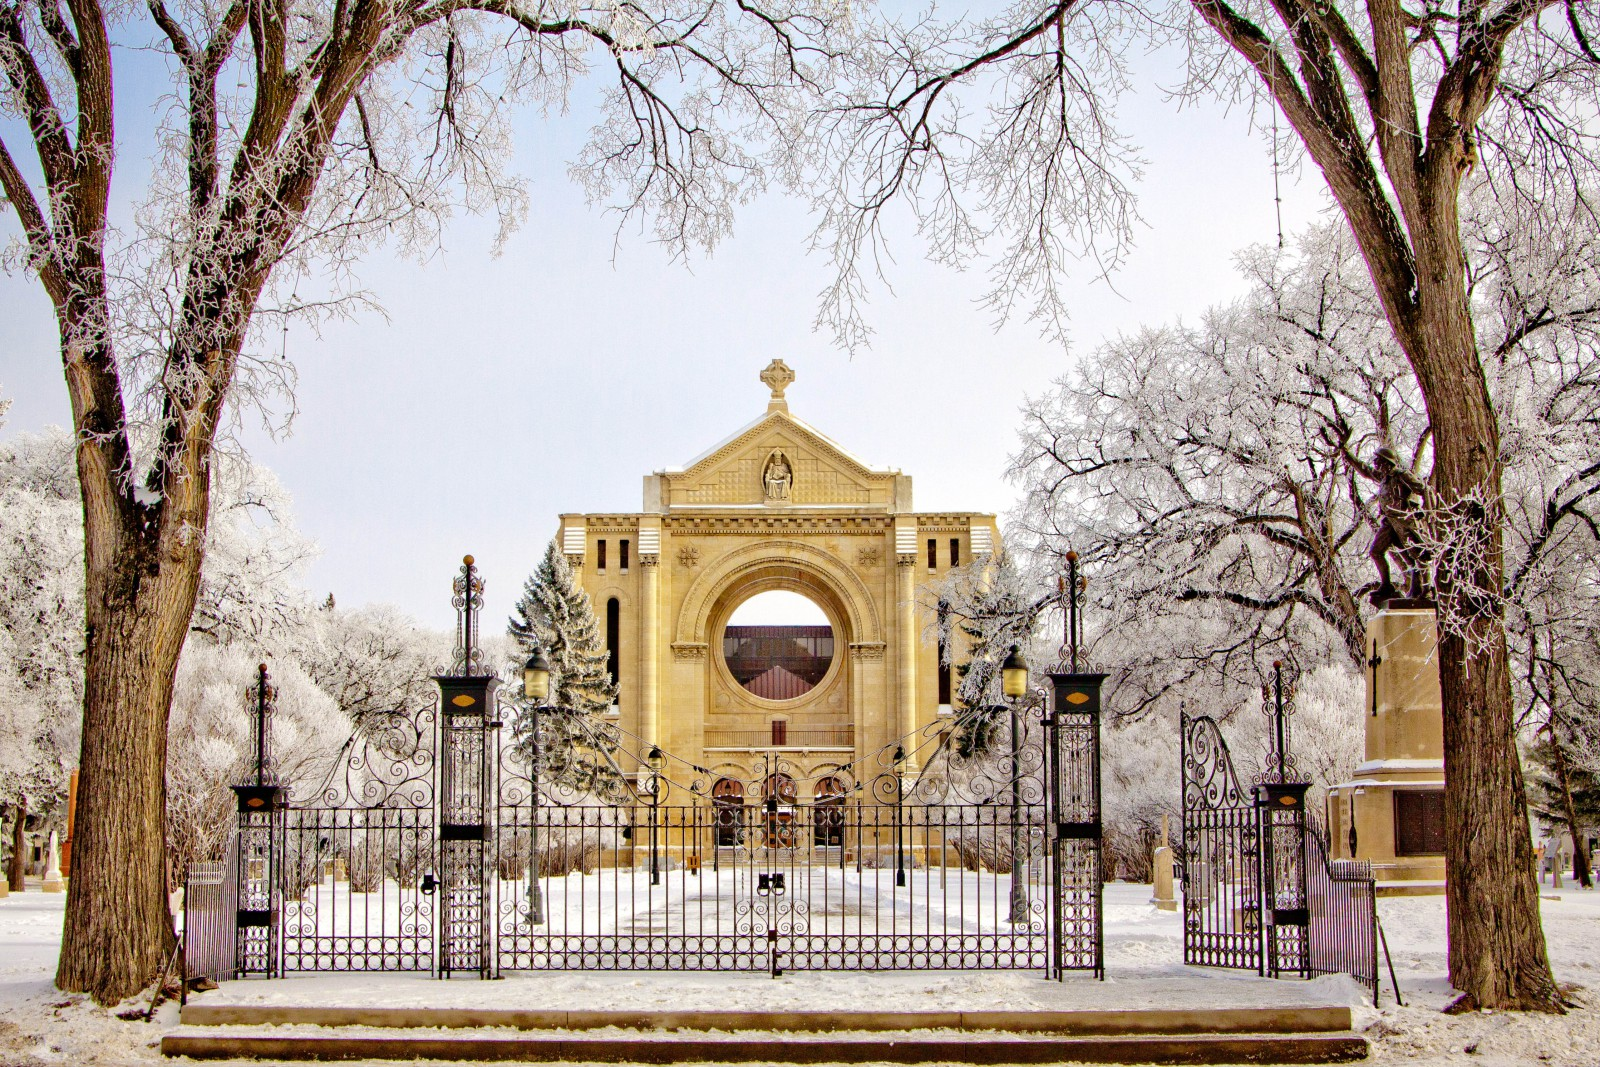 Manitoba's winter days are bright and refreshing, and winter months are perfect for night shoots. Pictured here: Saint Boniface Cathedral (Tourism Winnipeg.)